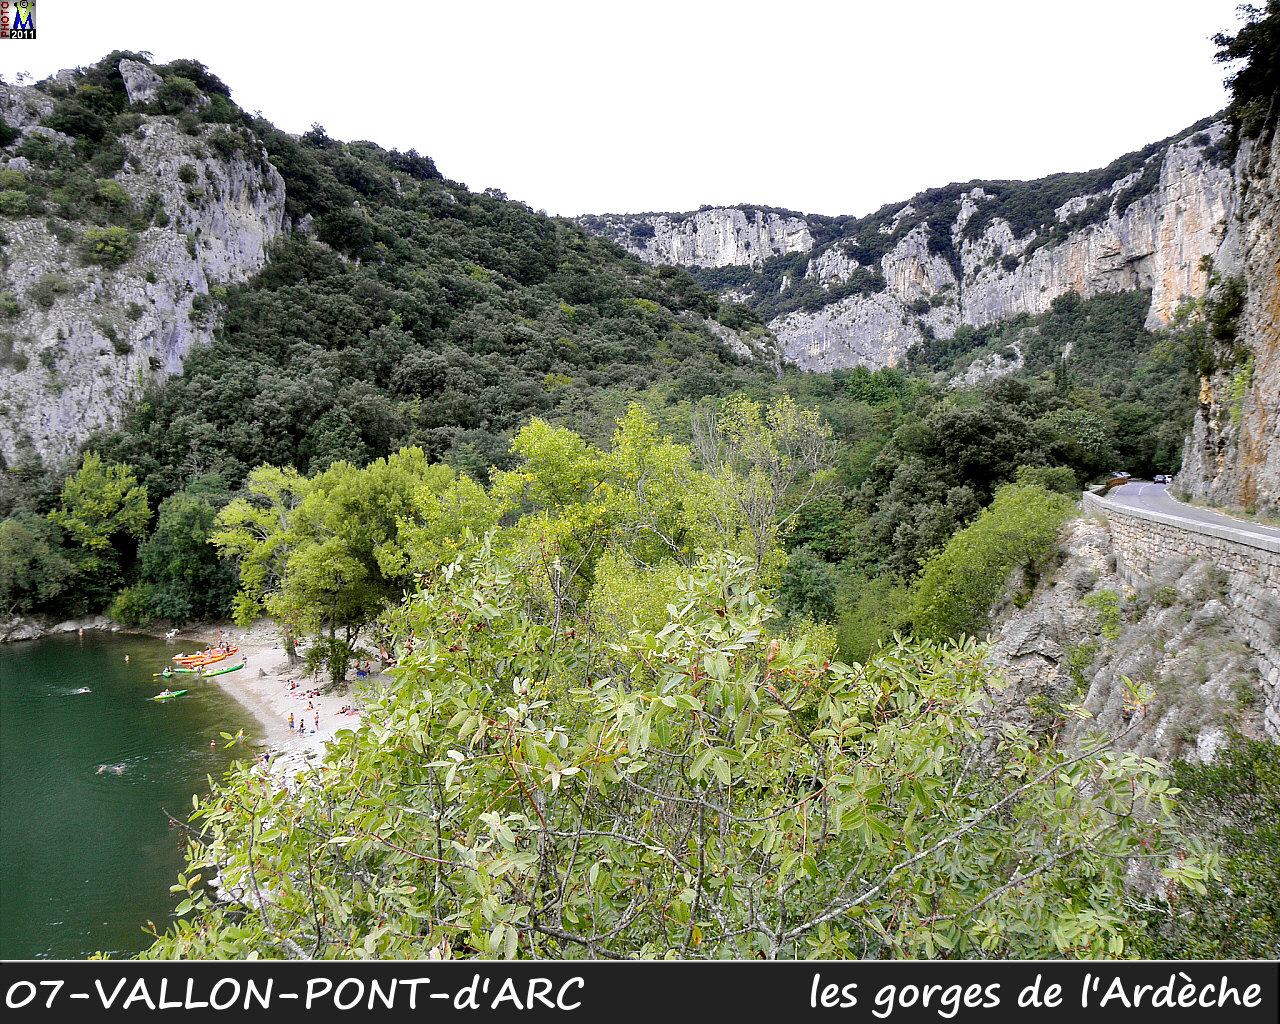 07VALLON-PONT-ARC_gorges_112.jpg